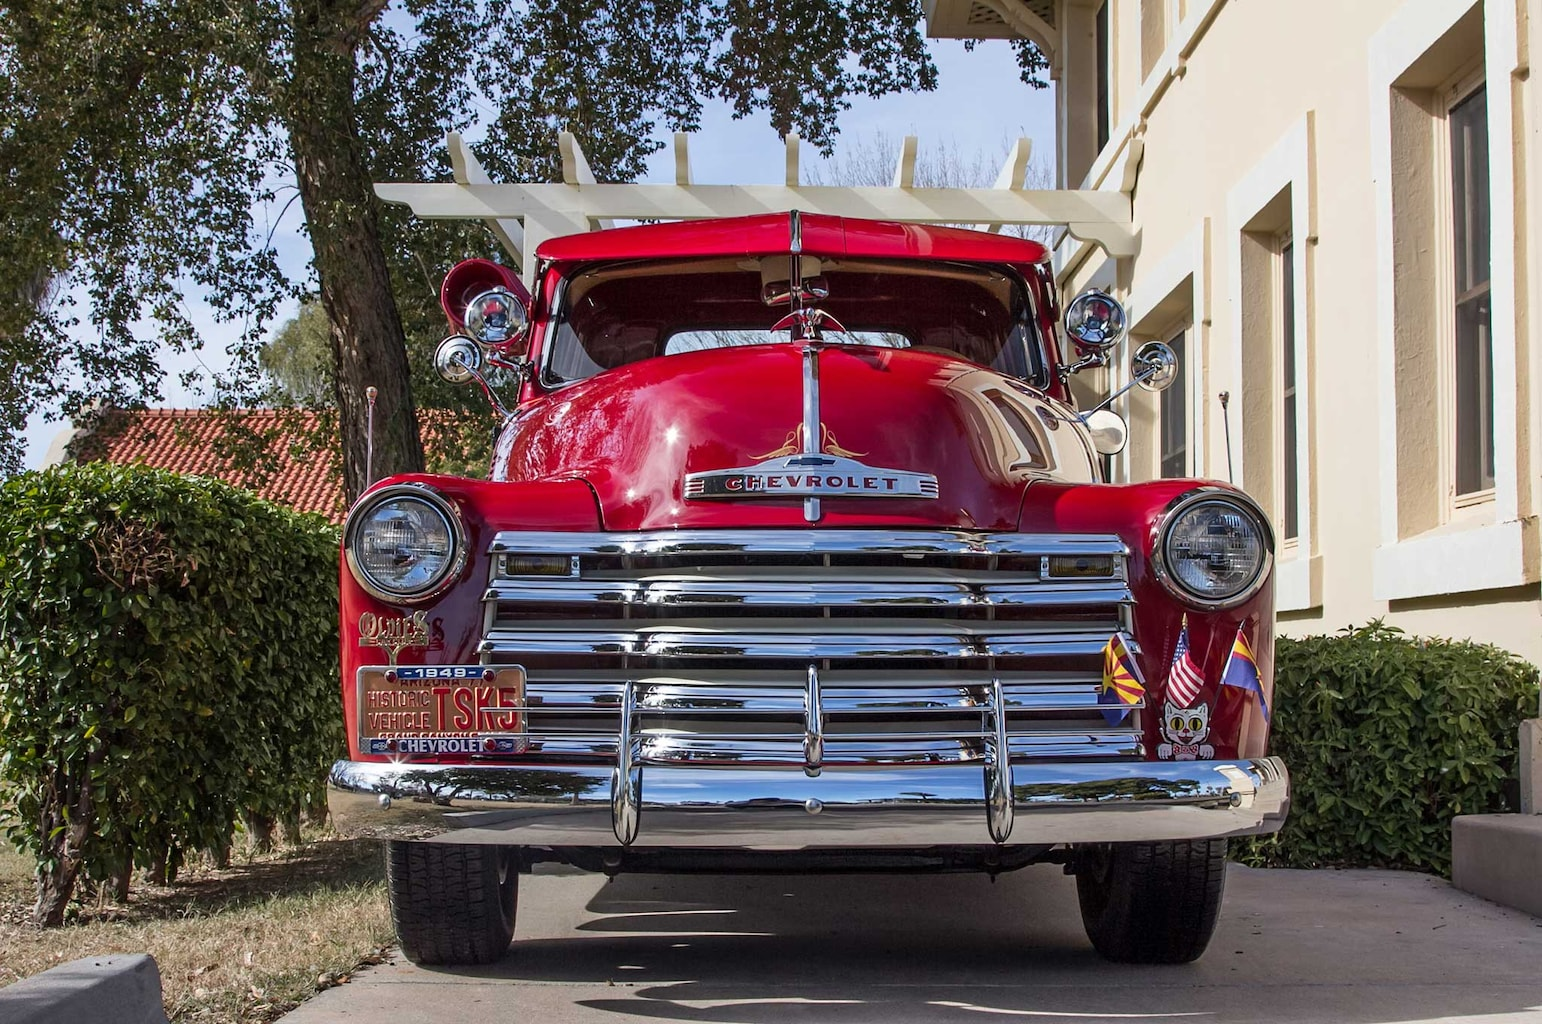 007 1949 chevy 3100 stake bed front grille